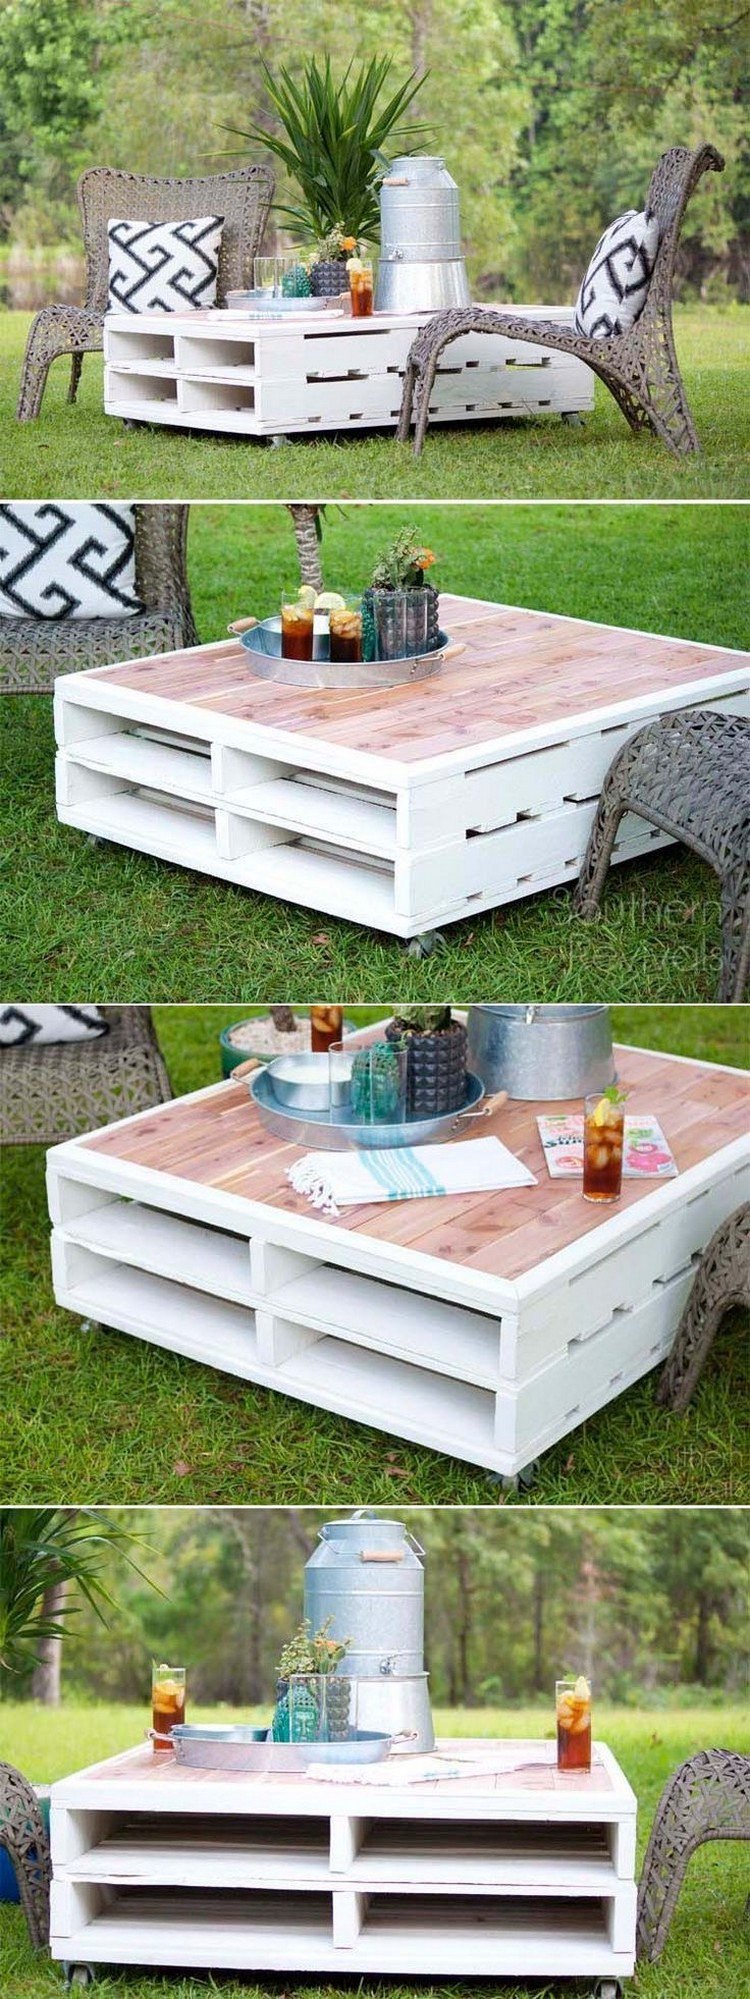 Most easiest but practical recycled pallet ideas that for Outdoor table decor ideas